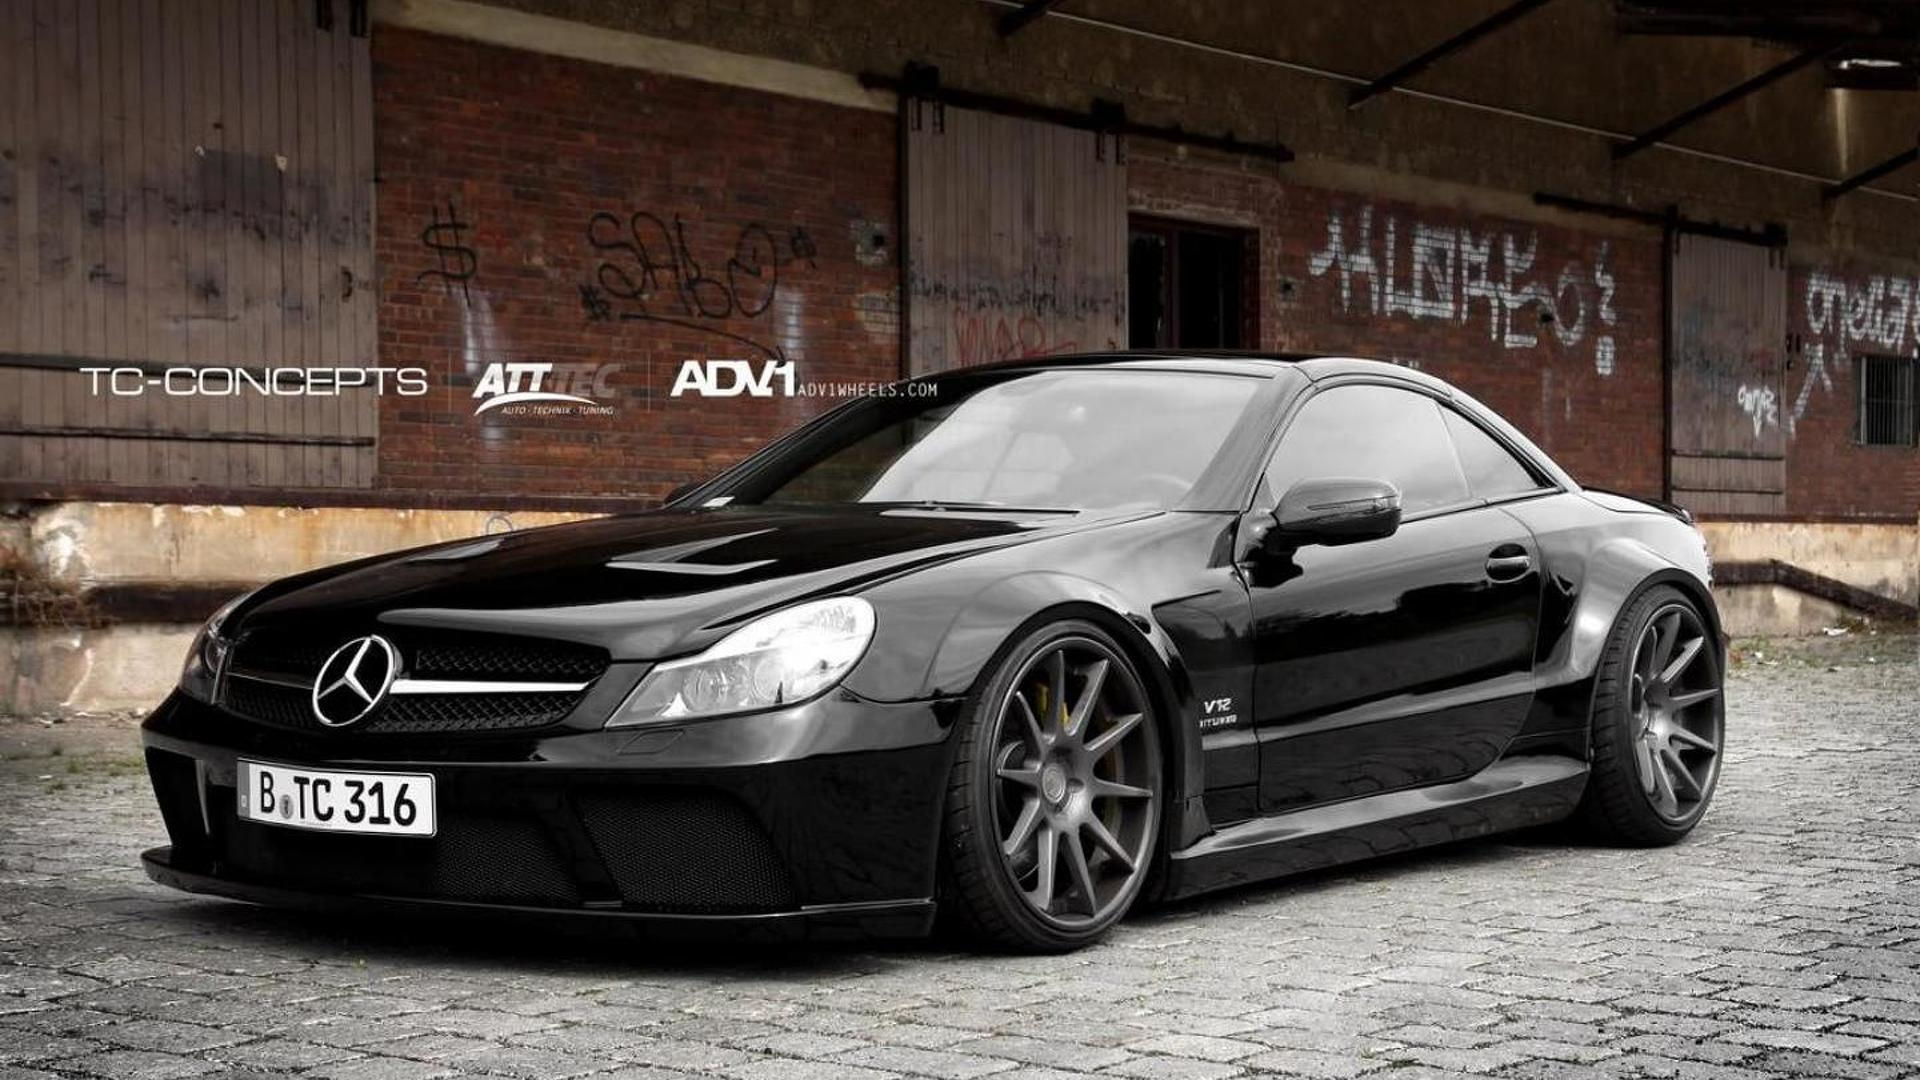 Mercedes Sl65 Amg Gets Black Series Conversion By Tc Concepts Images, Photos, Reviews